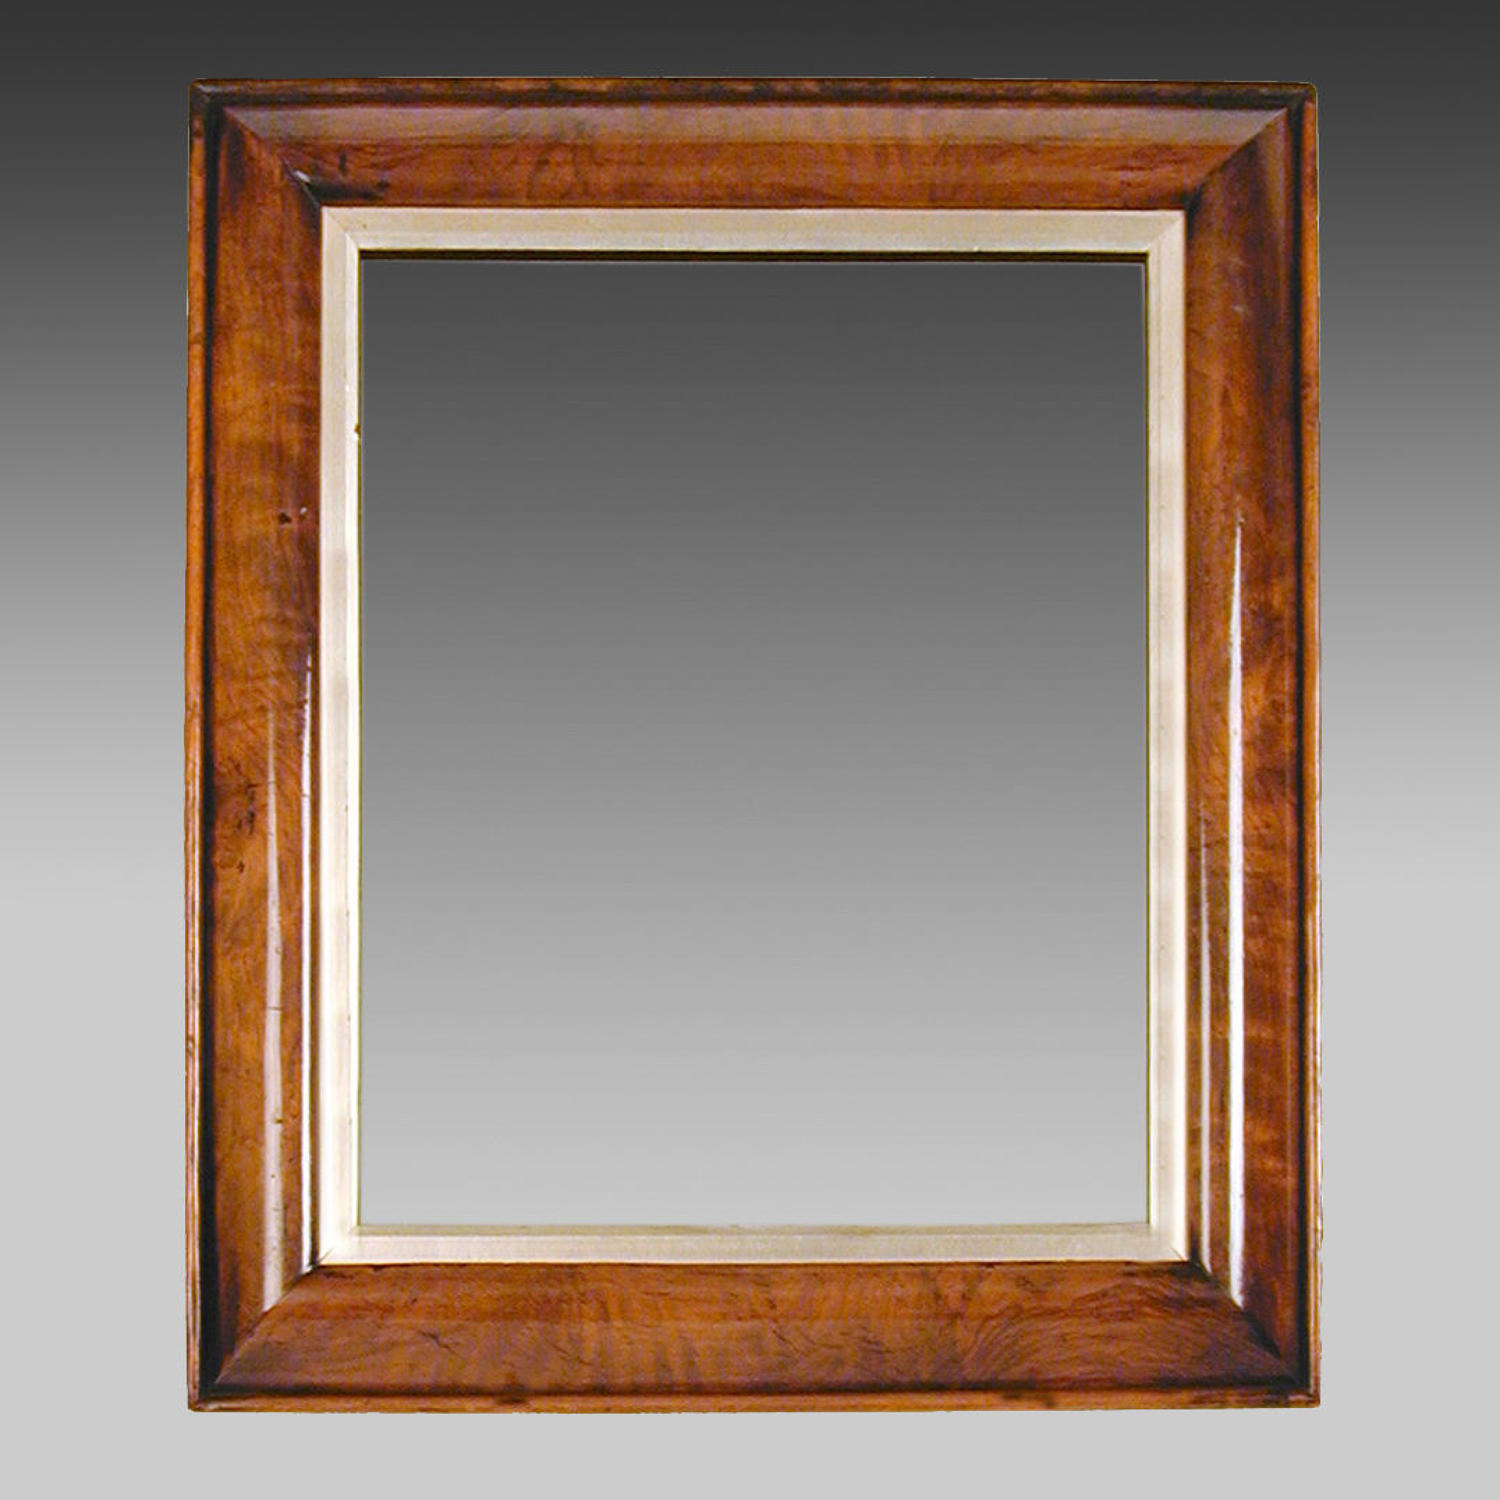 19th century walnut framed portrait mirror